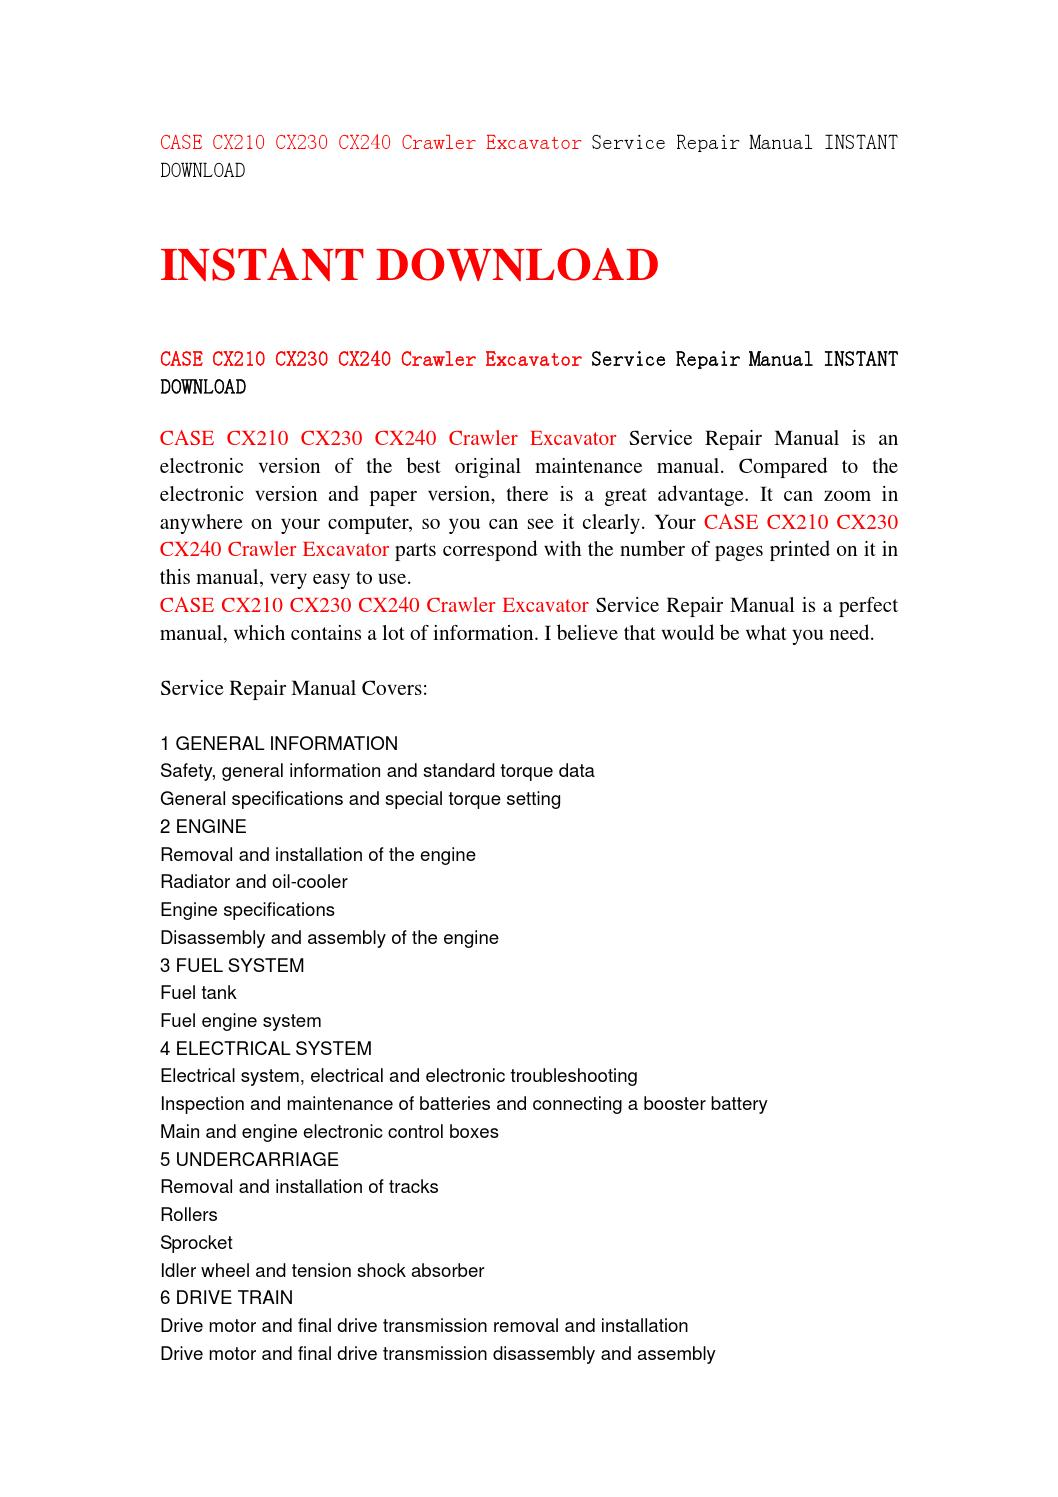 Case cx210 cx230 cx240 crawler excavator service repair manual instant  download by jfhsjefn - issuu